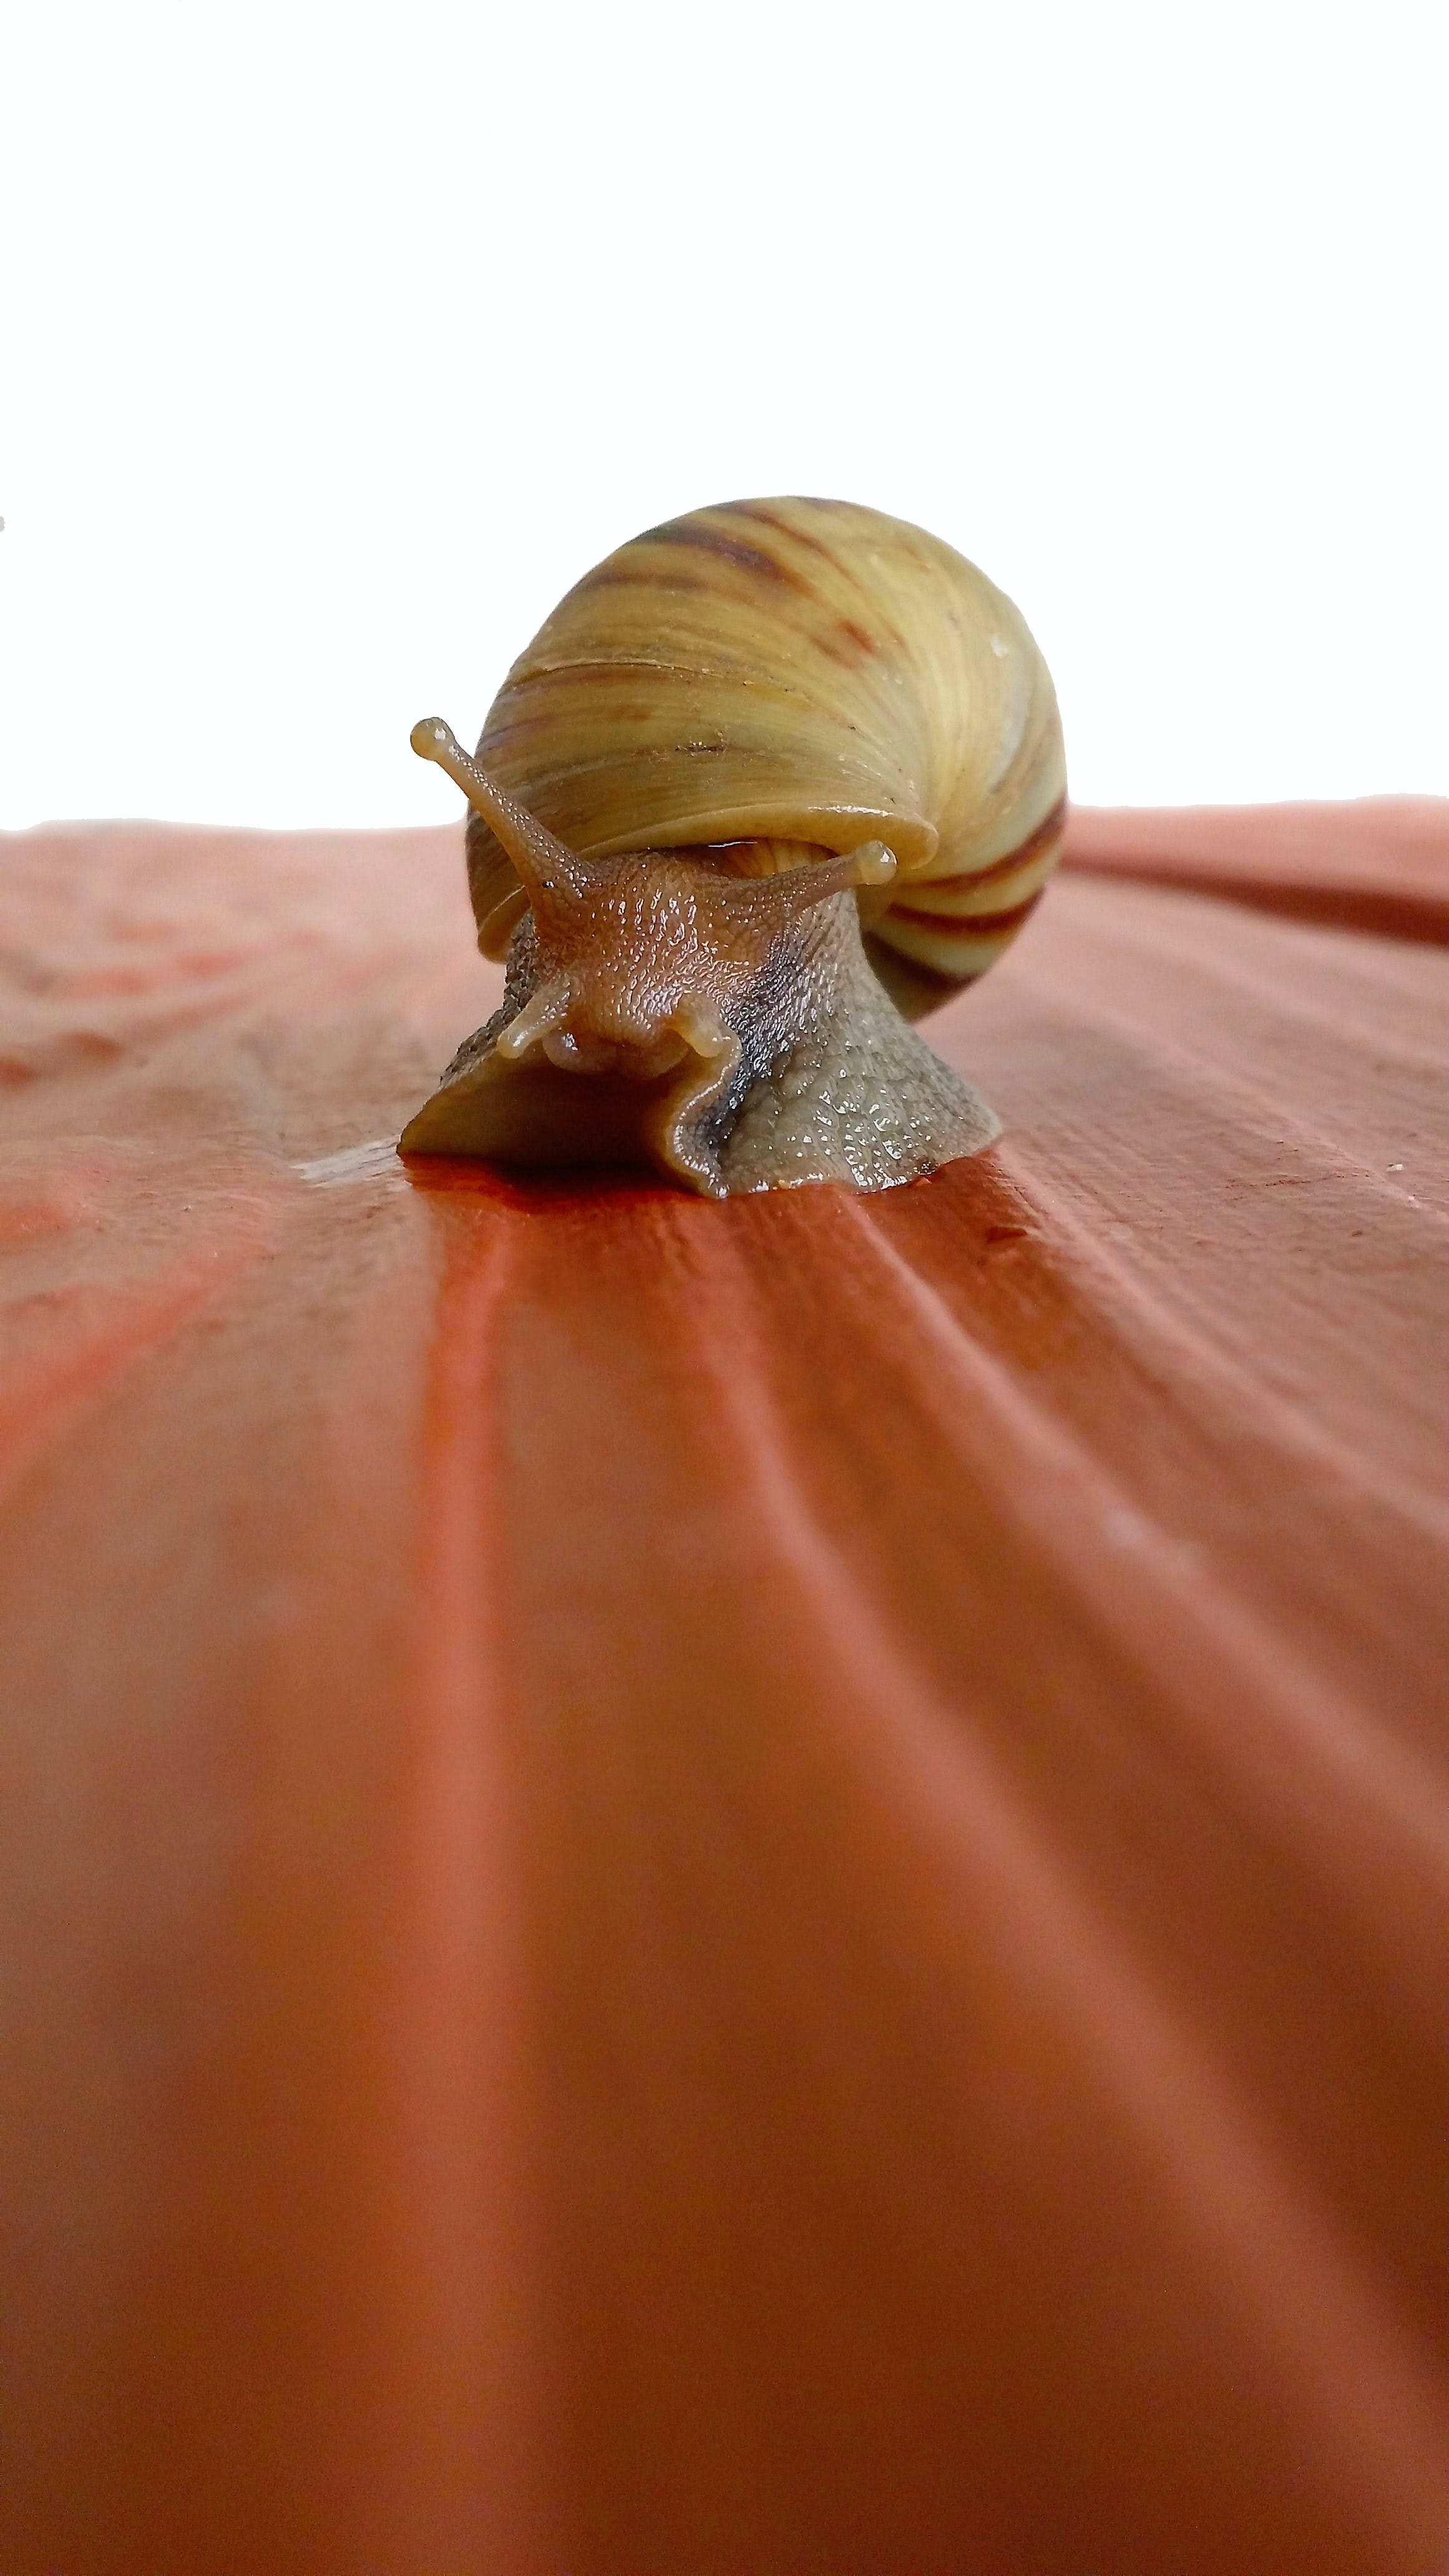 Brown Snail on Red Surface